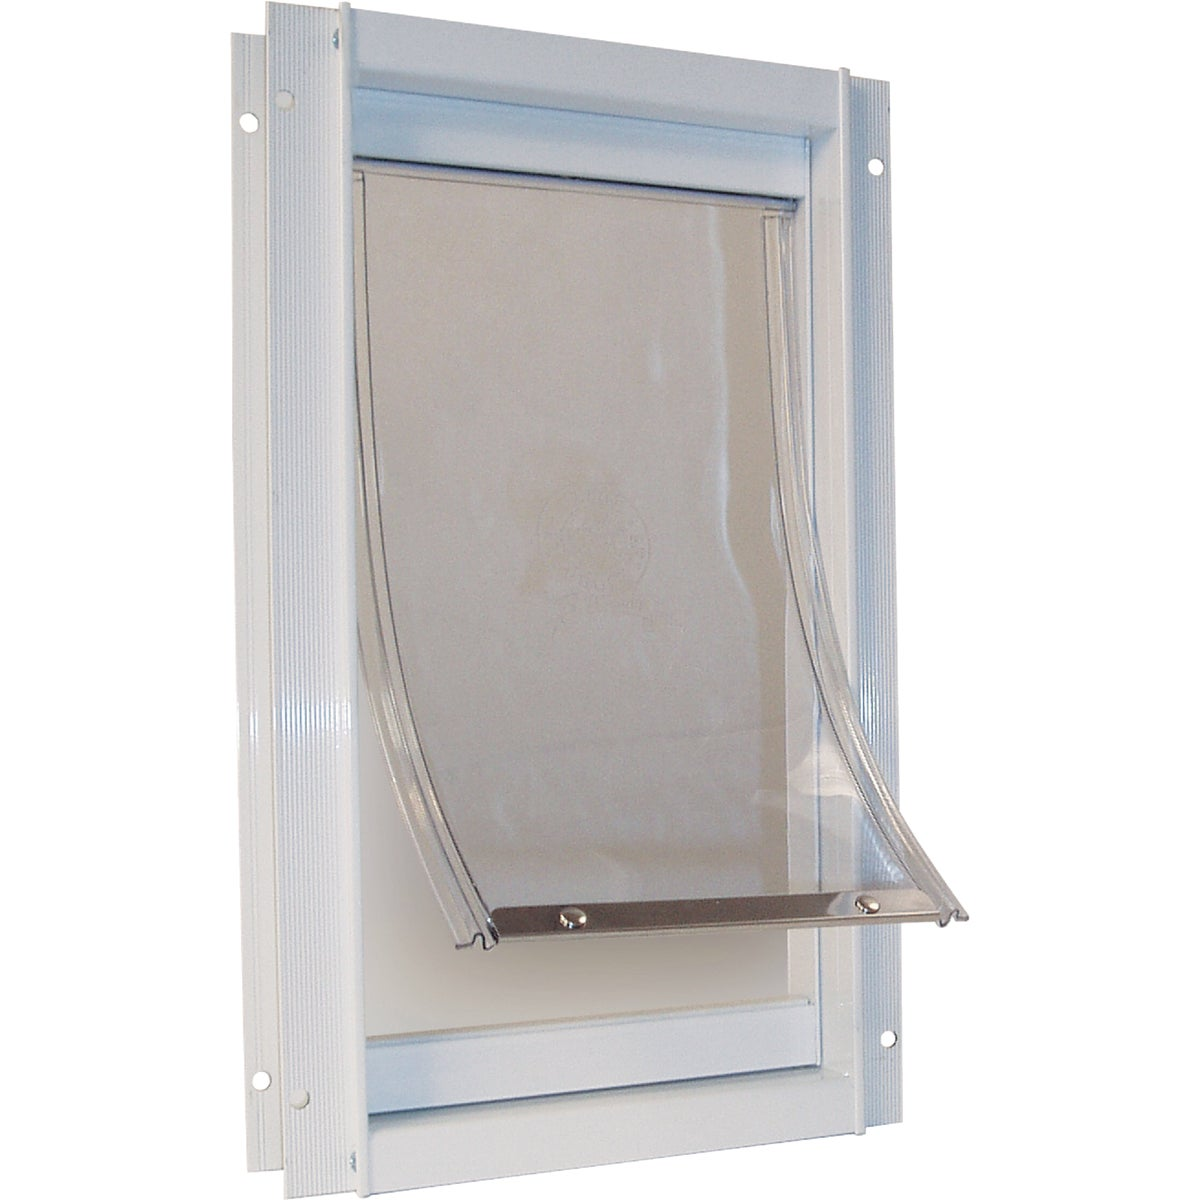 SUPER LRG ALUM PET DOOR - DDSLW by Ideal Pet Products